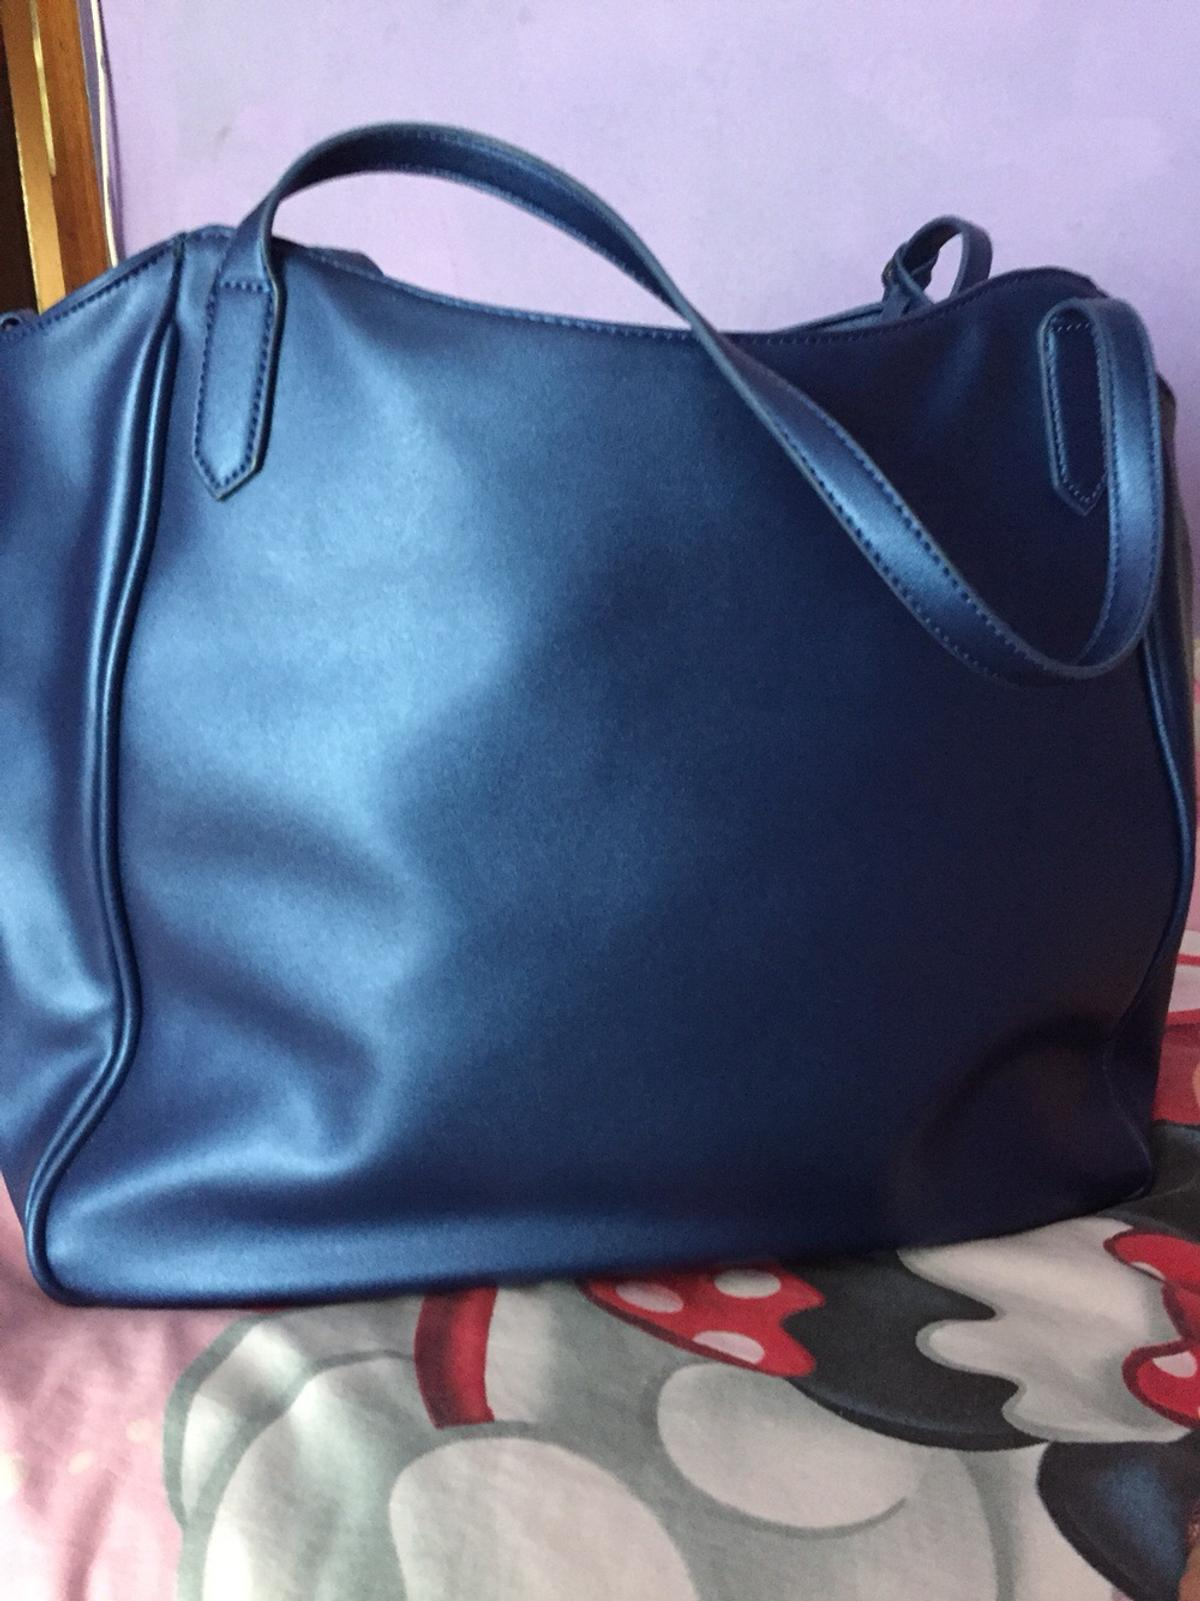 3eeee315c8a1f1 Borsa Gaëlle Paris in 10043 Orbassano for €55.00 for sale - Shpock